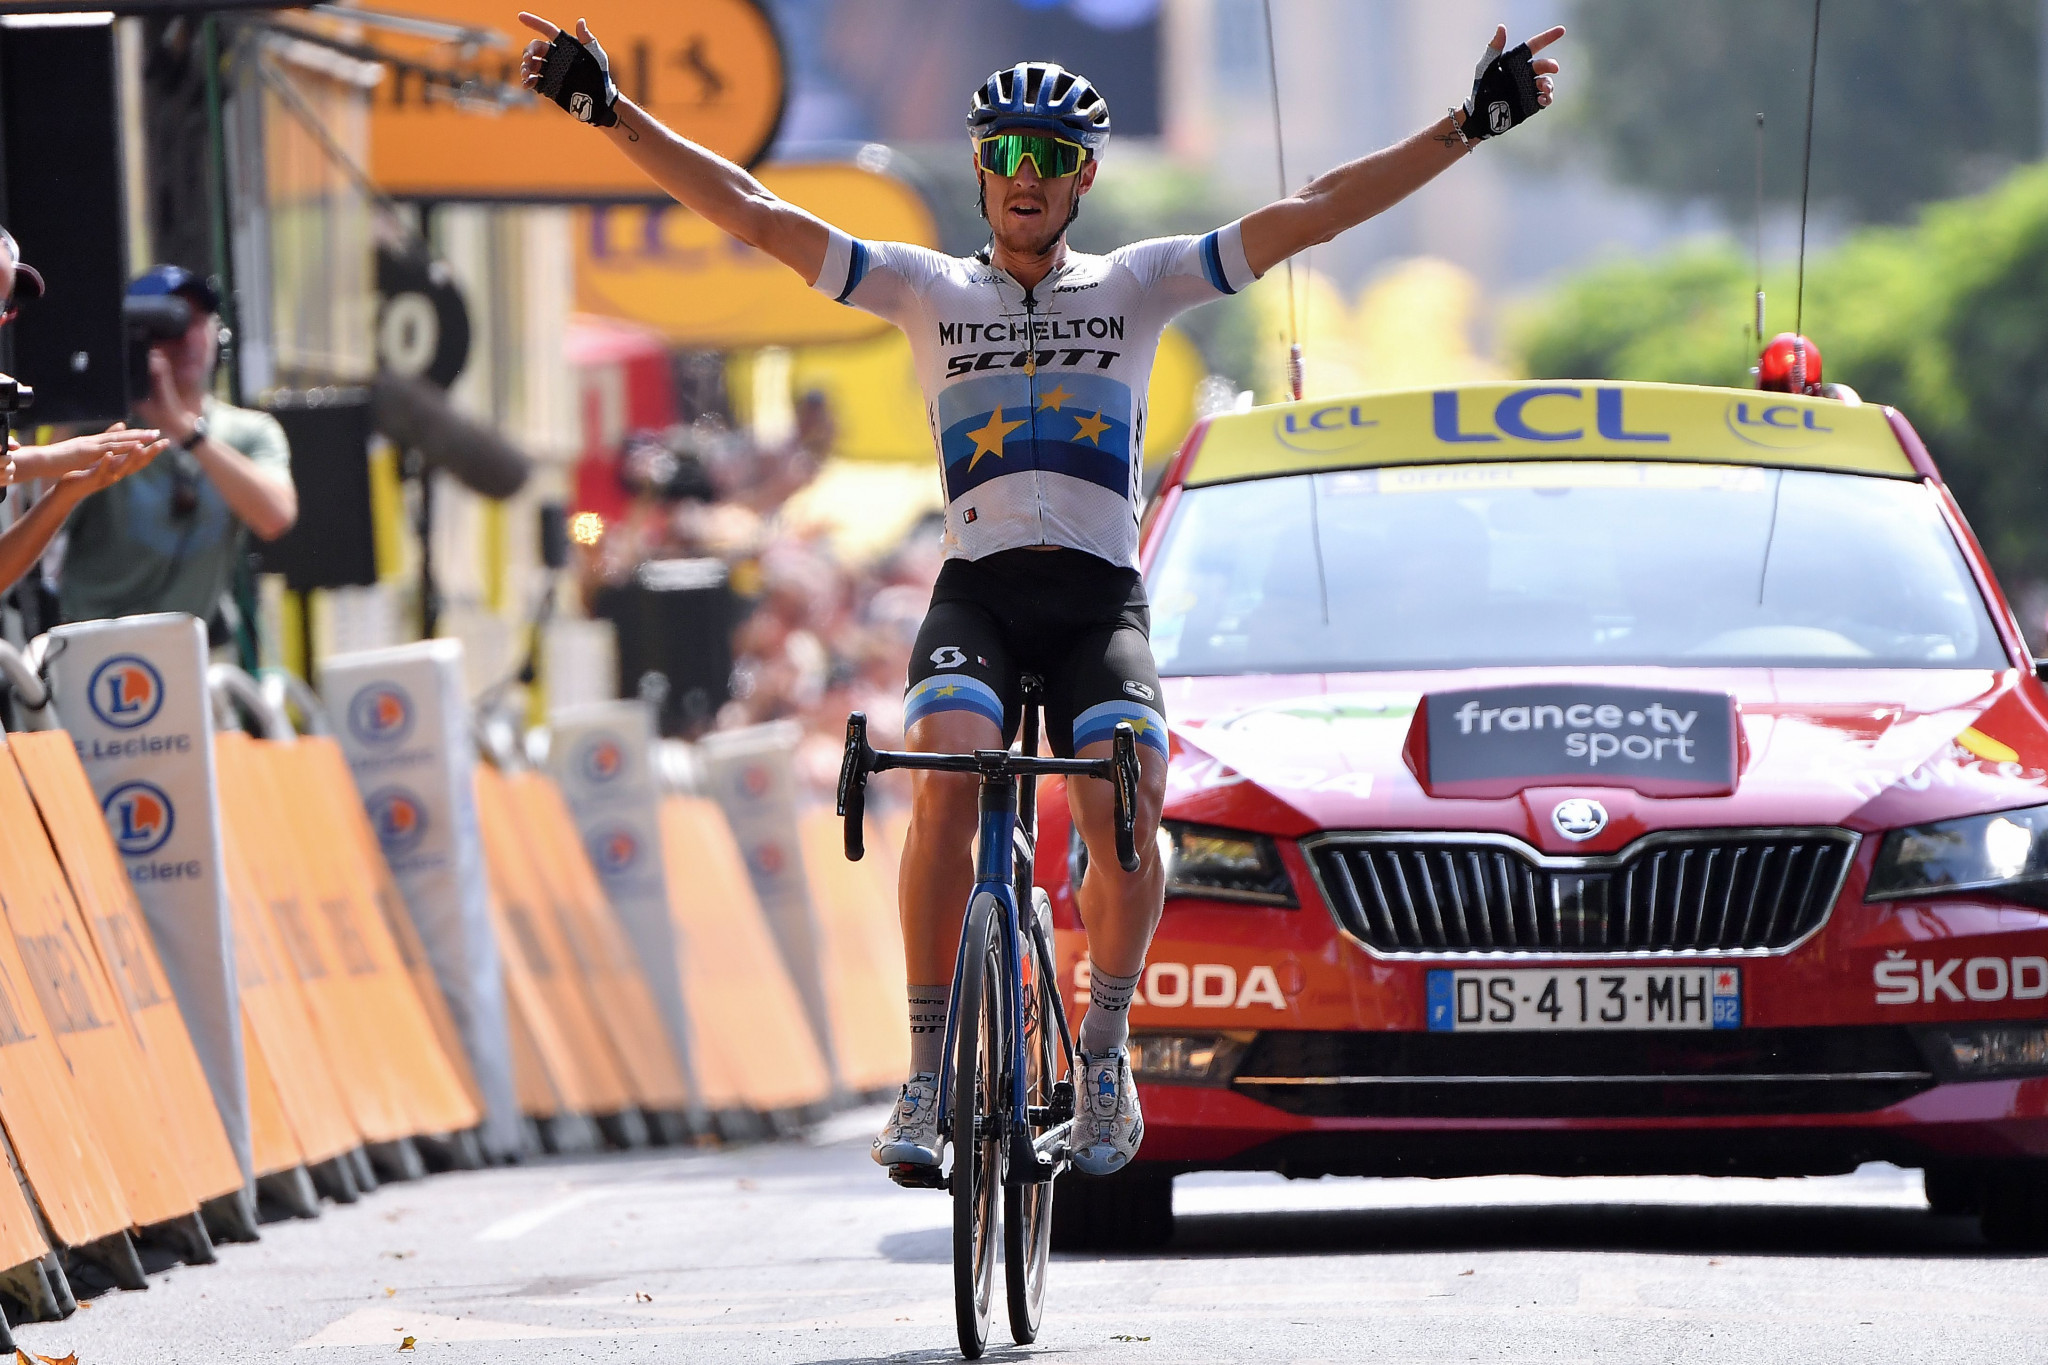 Trentin wins stage 17 of Tour de France as Alaphilippe keeps hold of yellow jersey